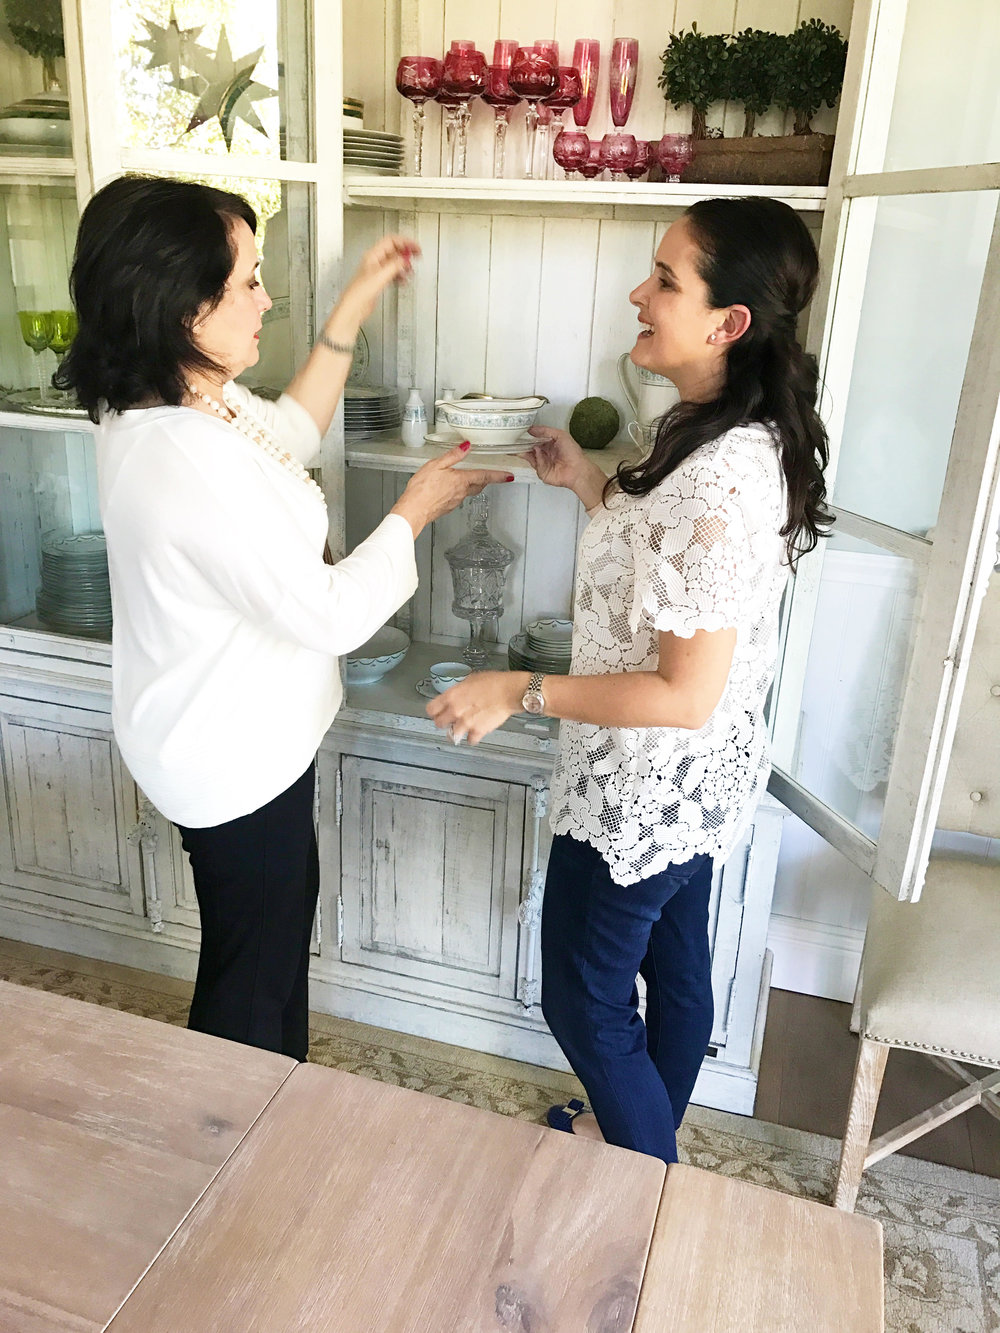 Luz Elena (l) and her daughter Luisa (r) discussing tableware at home.  (Photo Courtesy: mesachicparties.com)